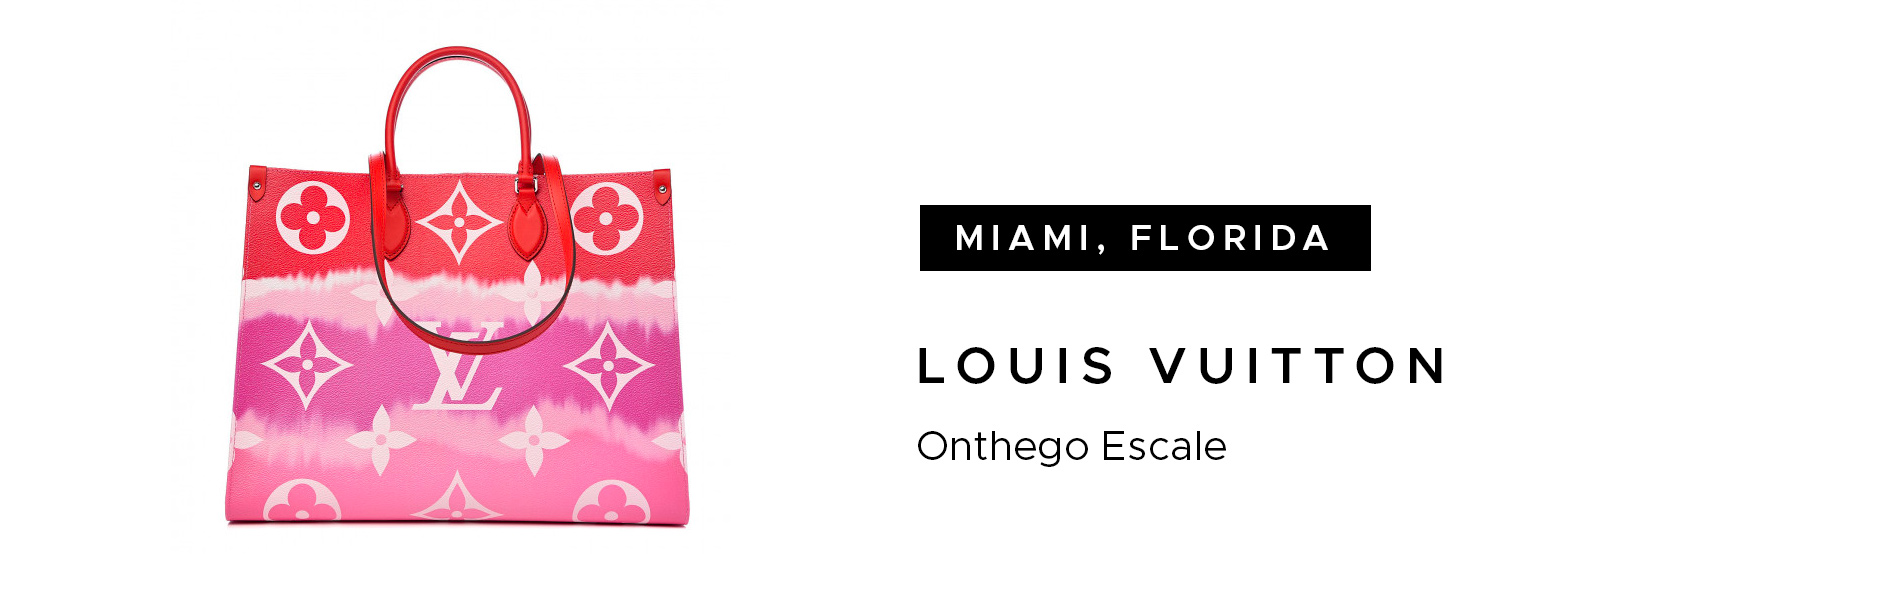 Miami, Florida Louis Vuitton Onthego Escale